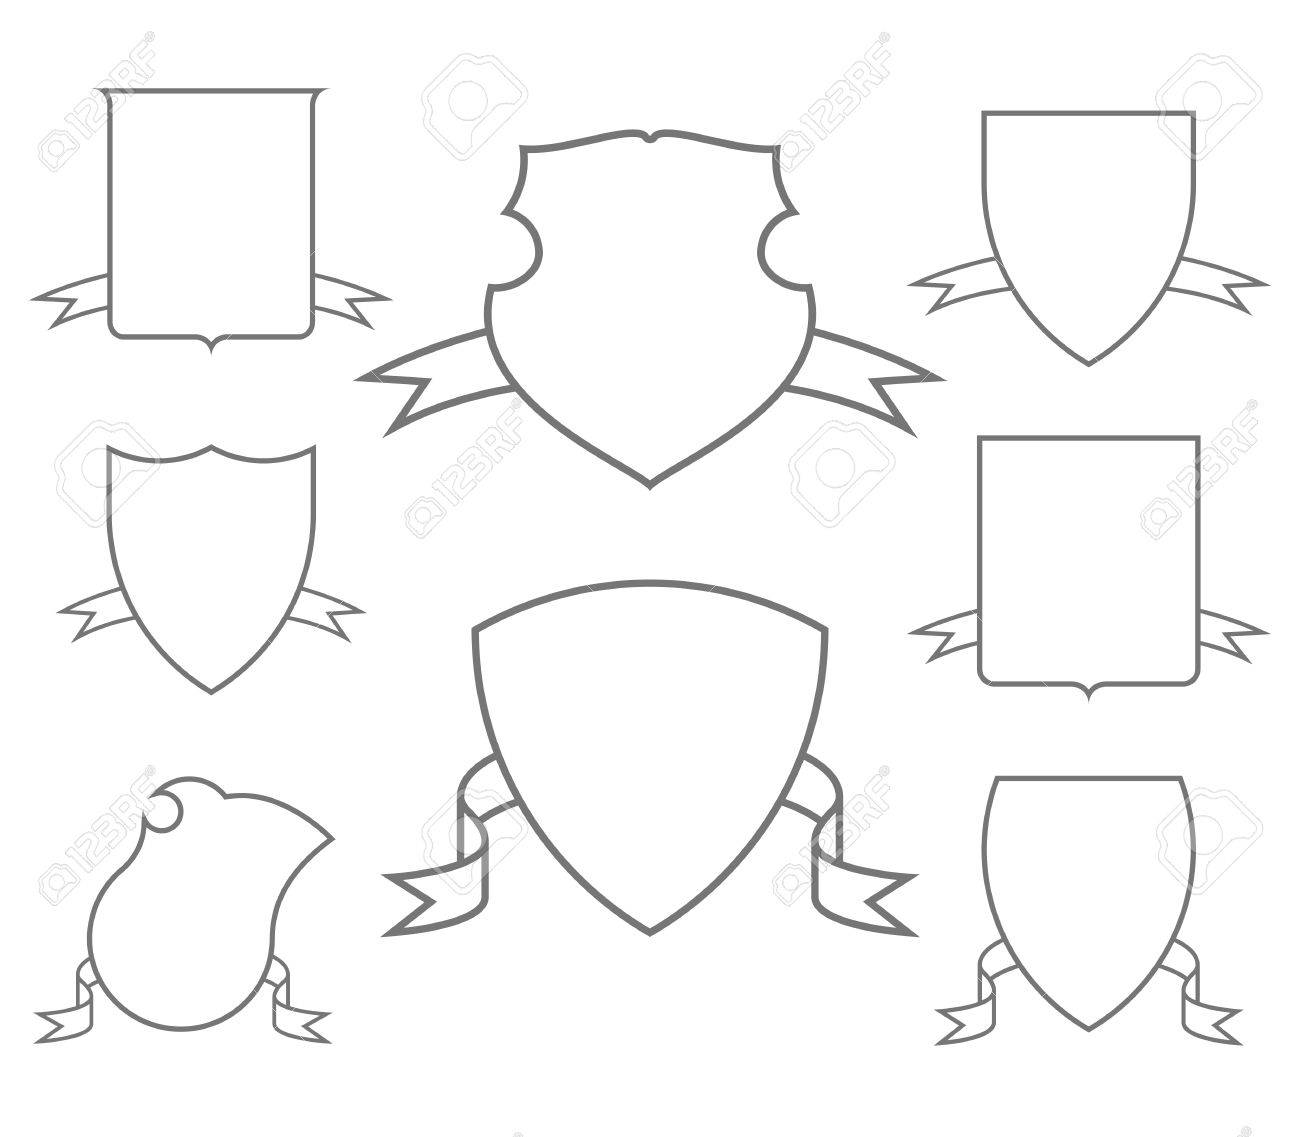 Escutcheons For Coat Of Arms Set, Shield Templates Royalty Free ...